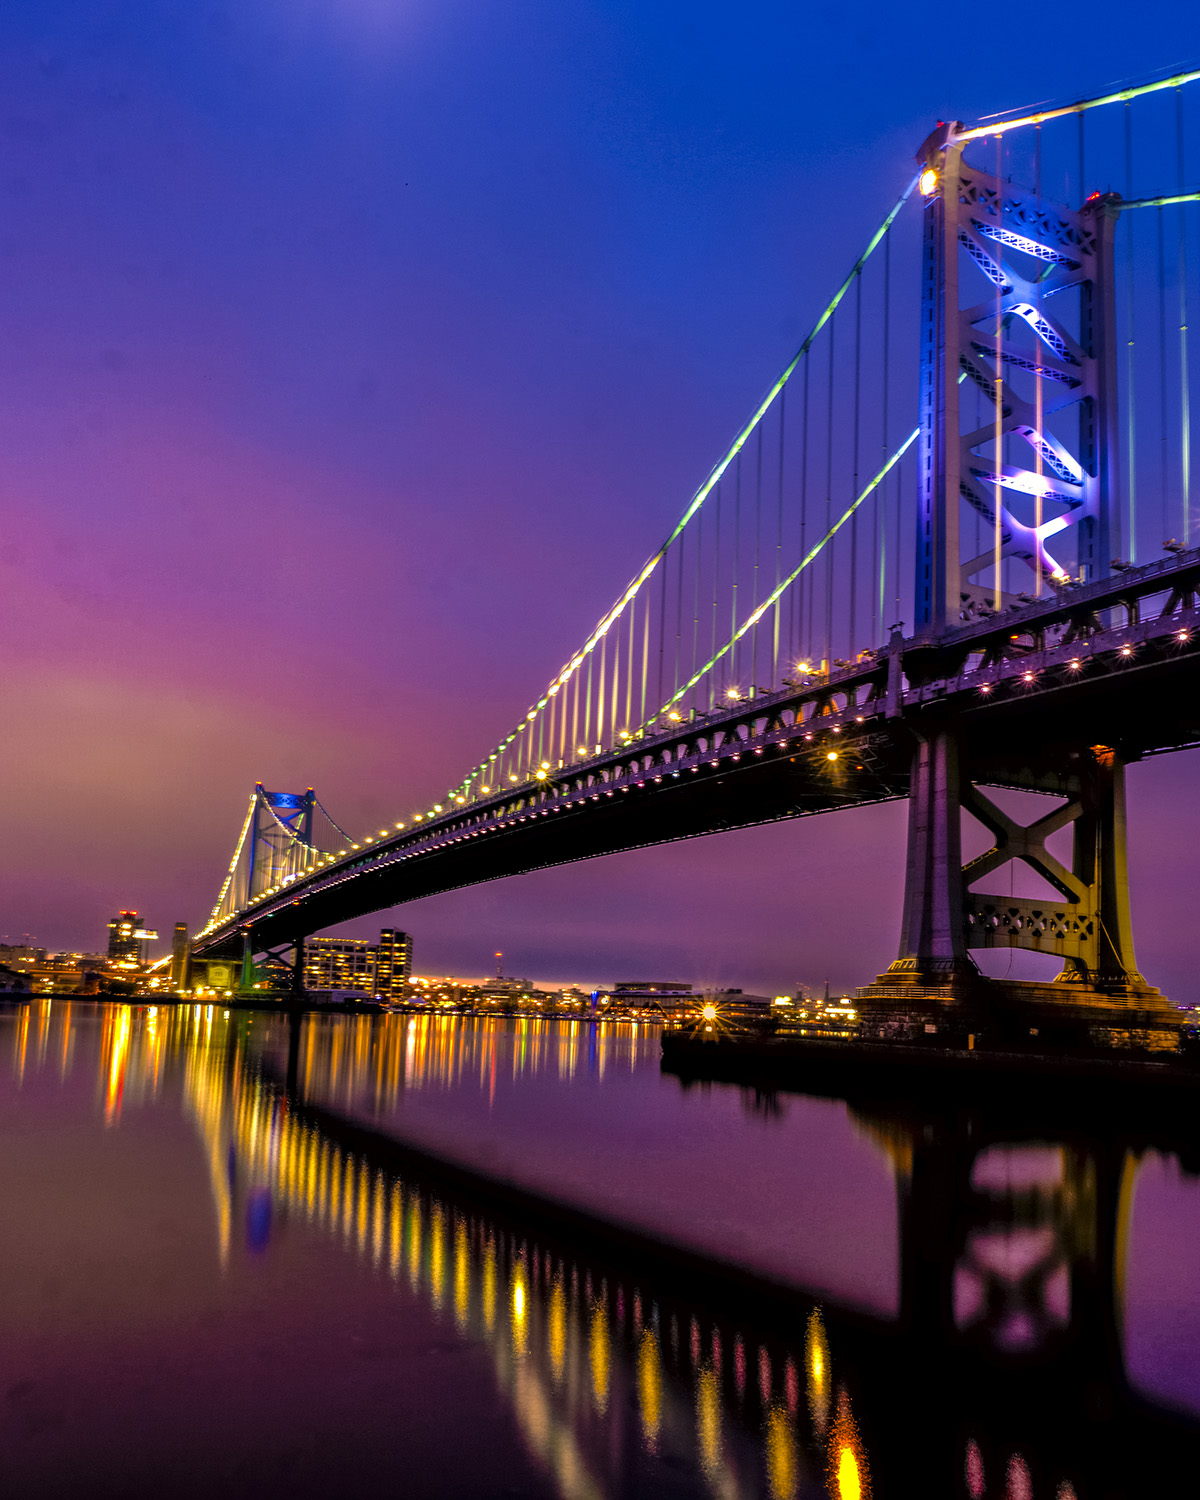 Patrick Fleury - Ben Franklin Bridge - Philadelphia, Pennsylvania